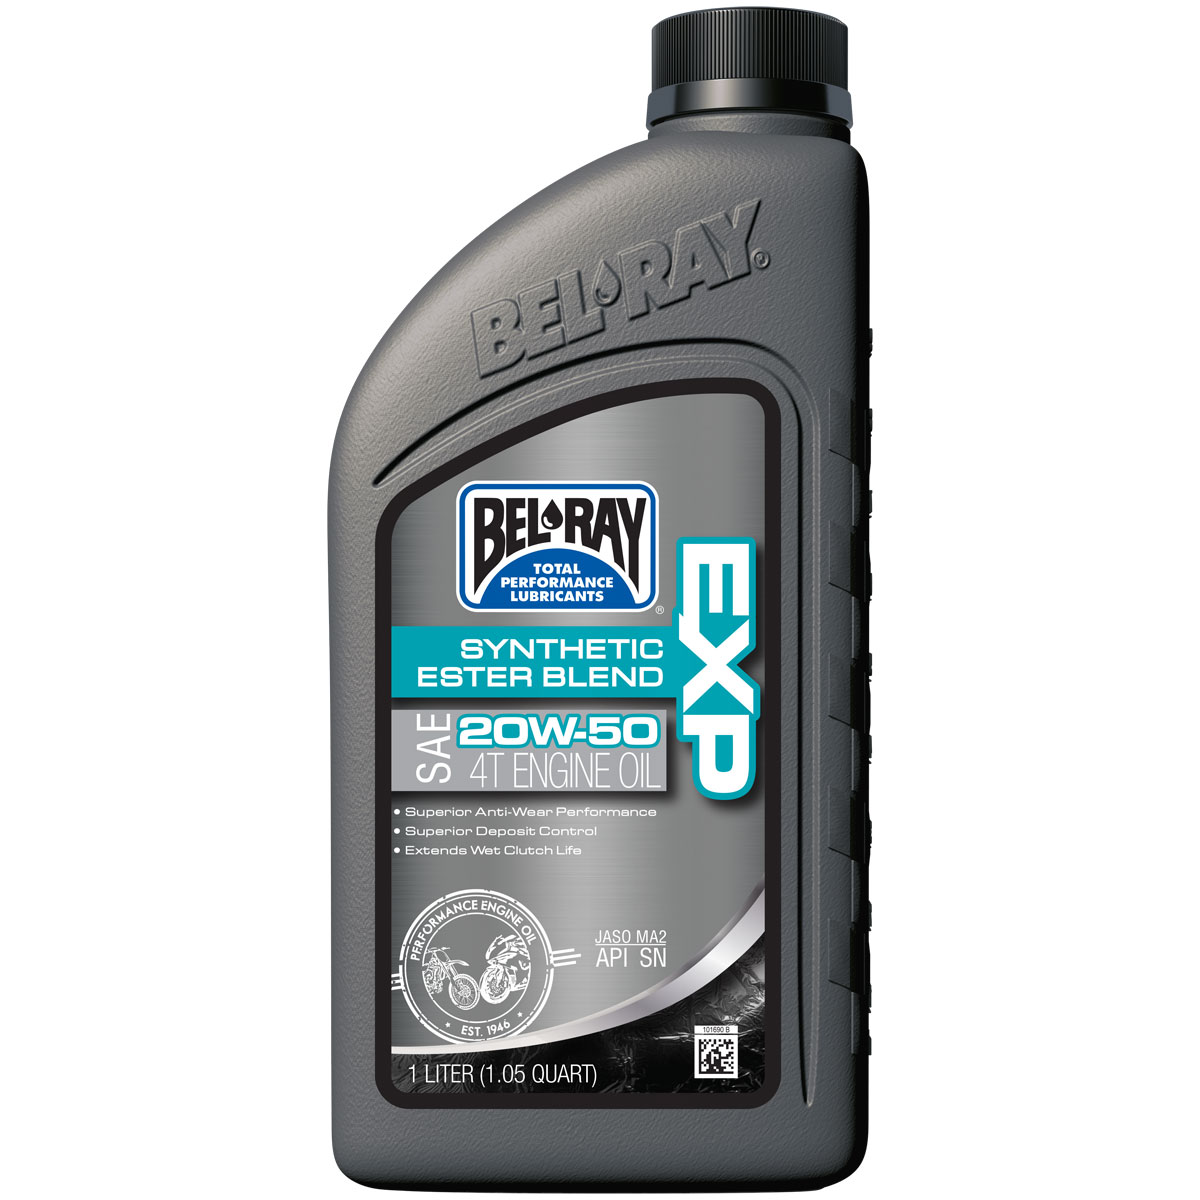 Bel-Ray EXP Synthetic Ester Blend 4T 20W50 Engine Oil 1 Liter